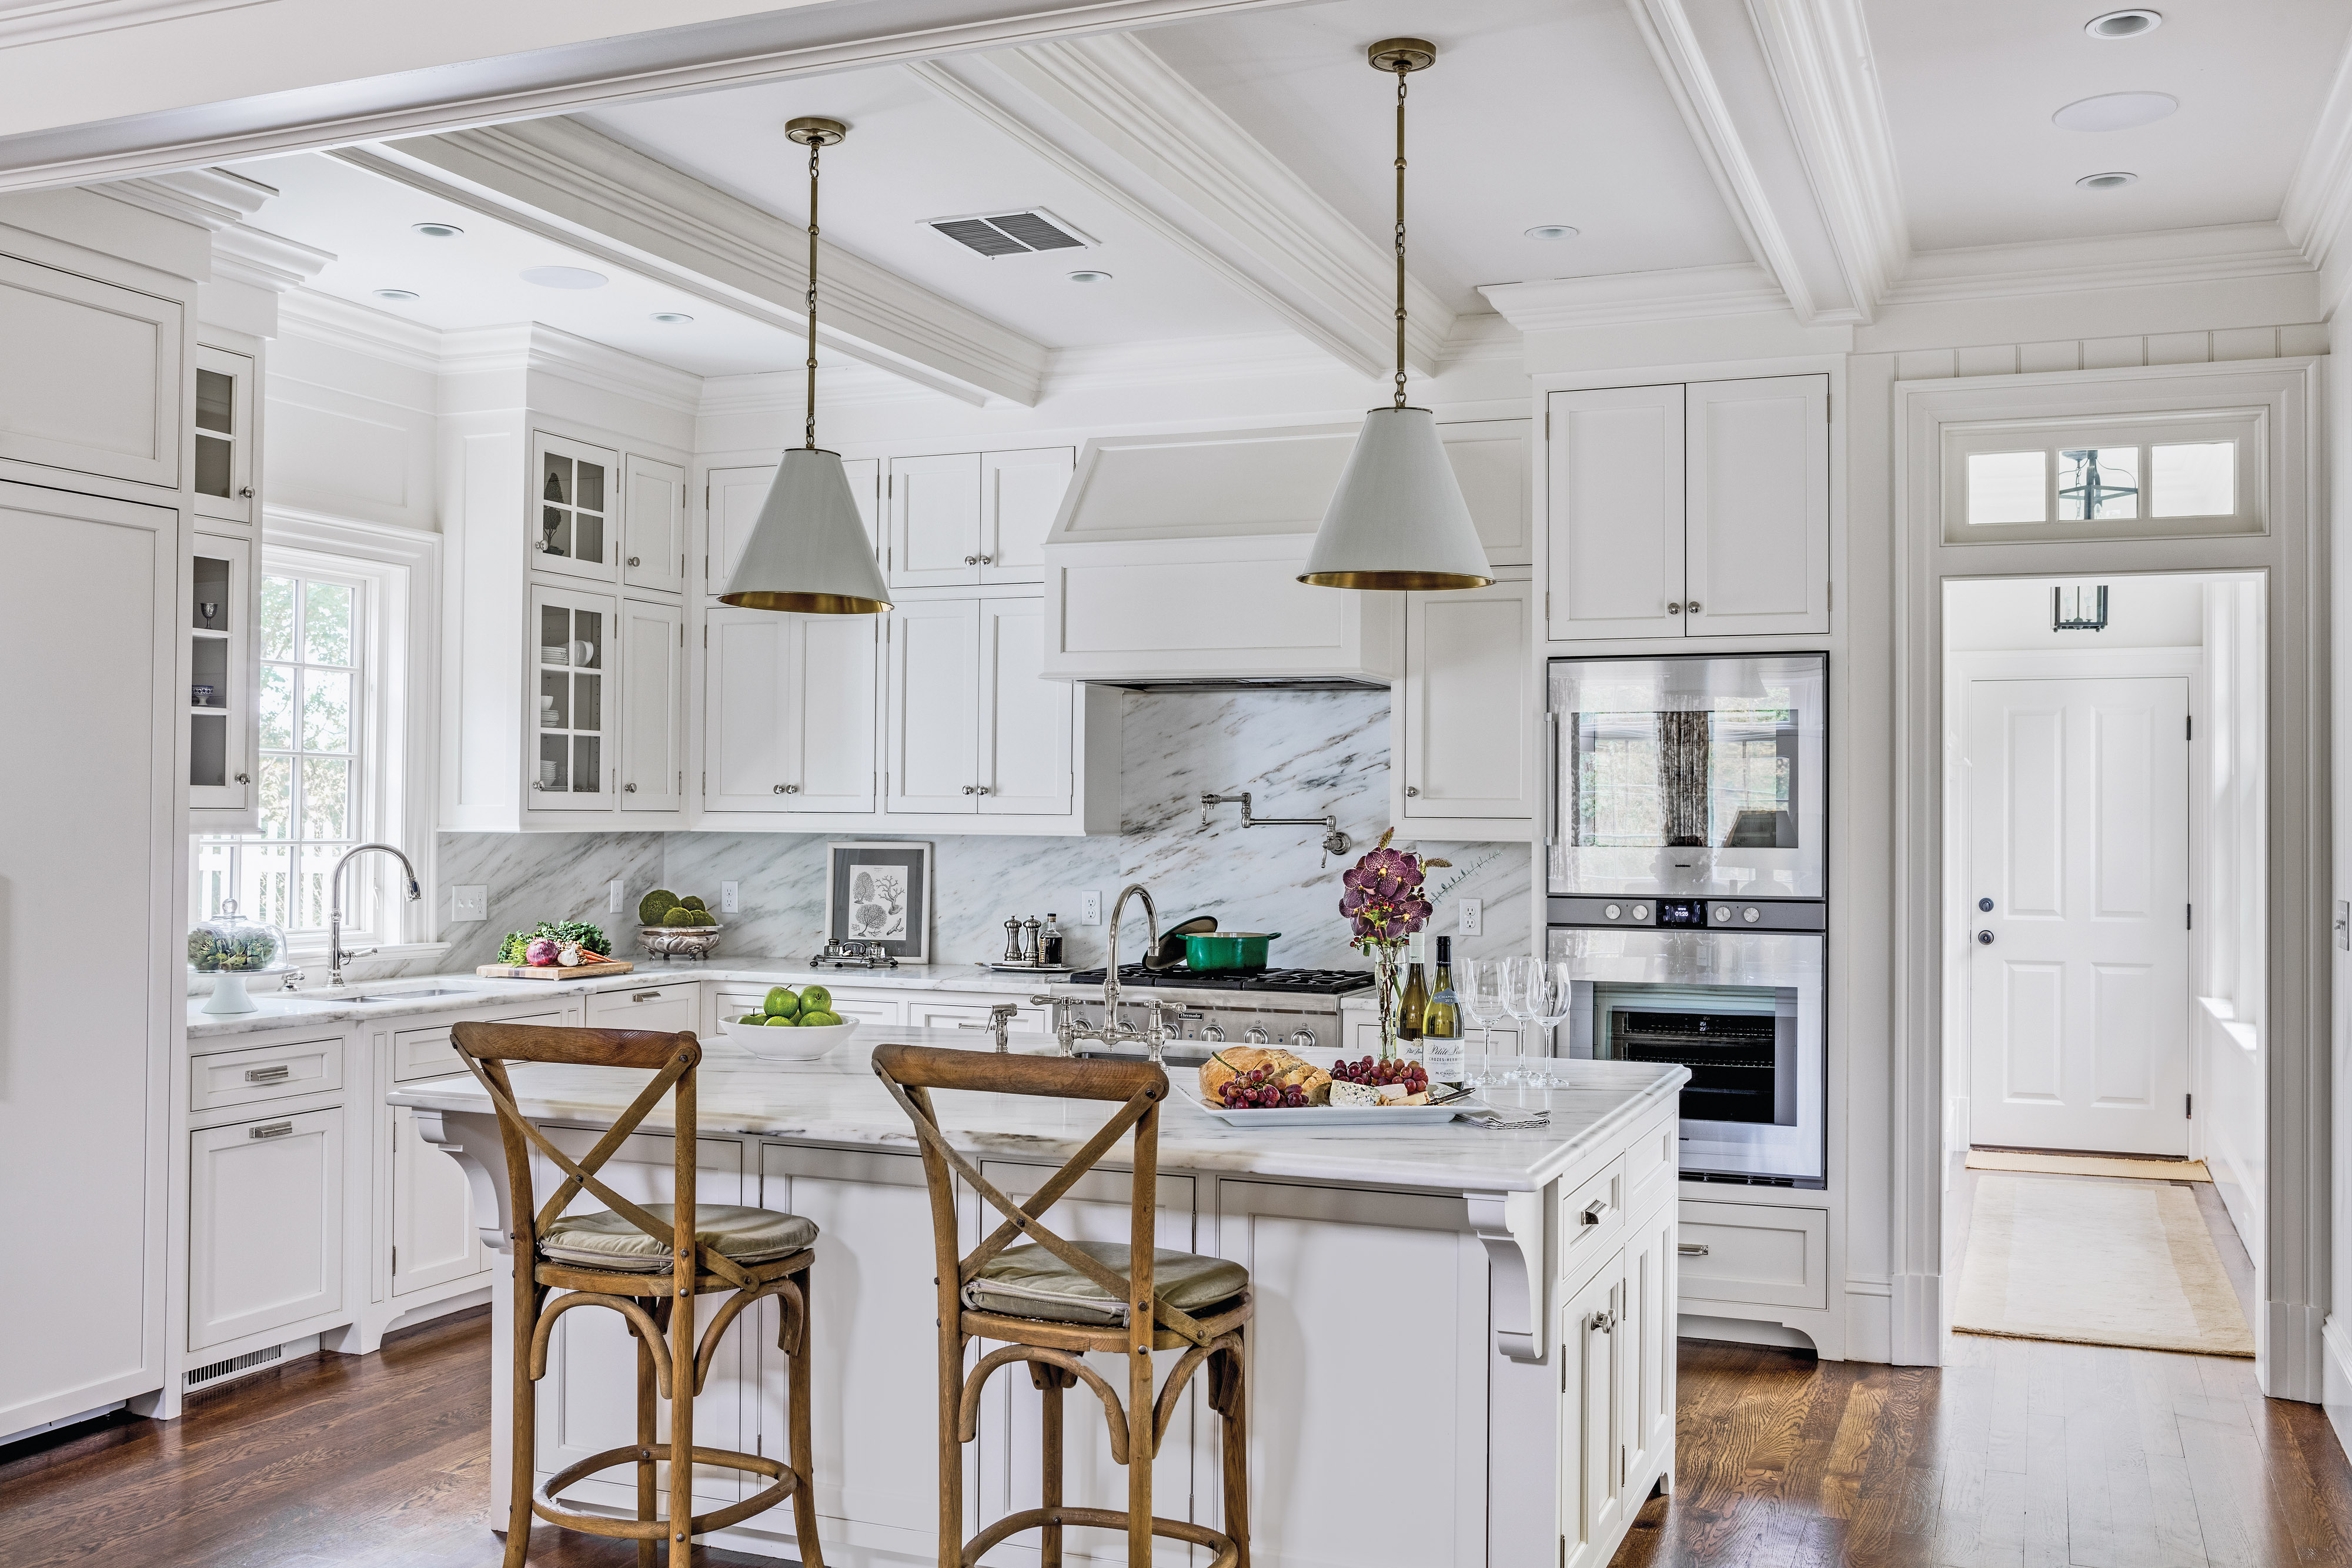 Cabinets were designed to mimic those in turn-of-the-century butler's pantries.